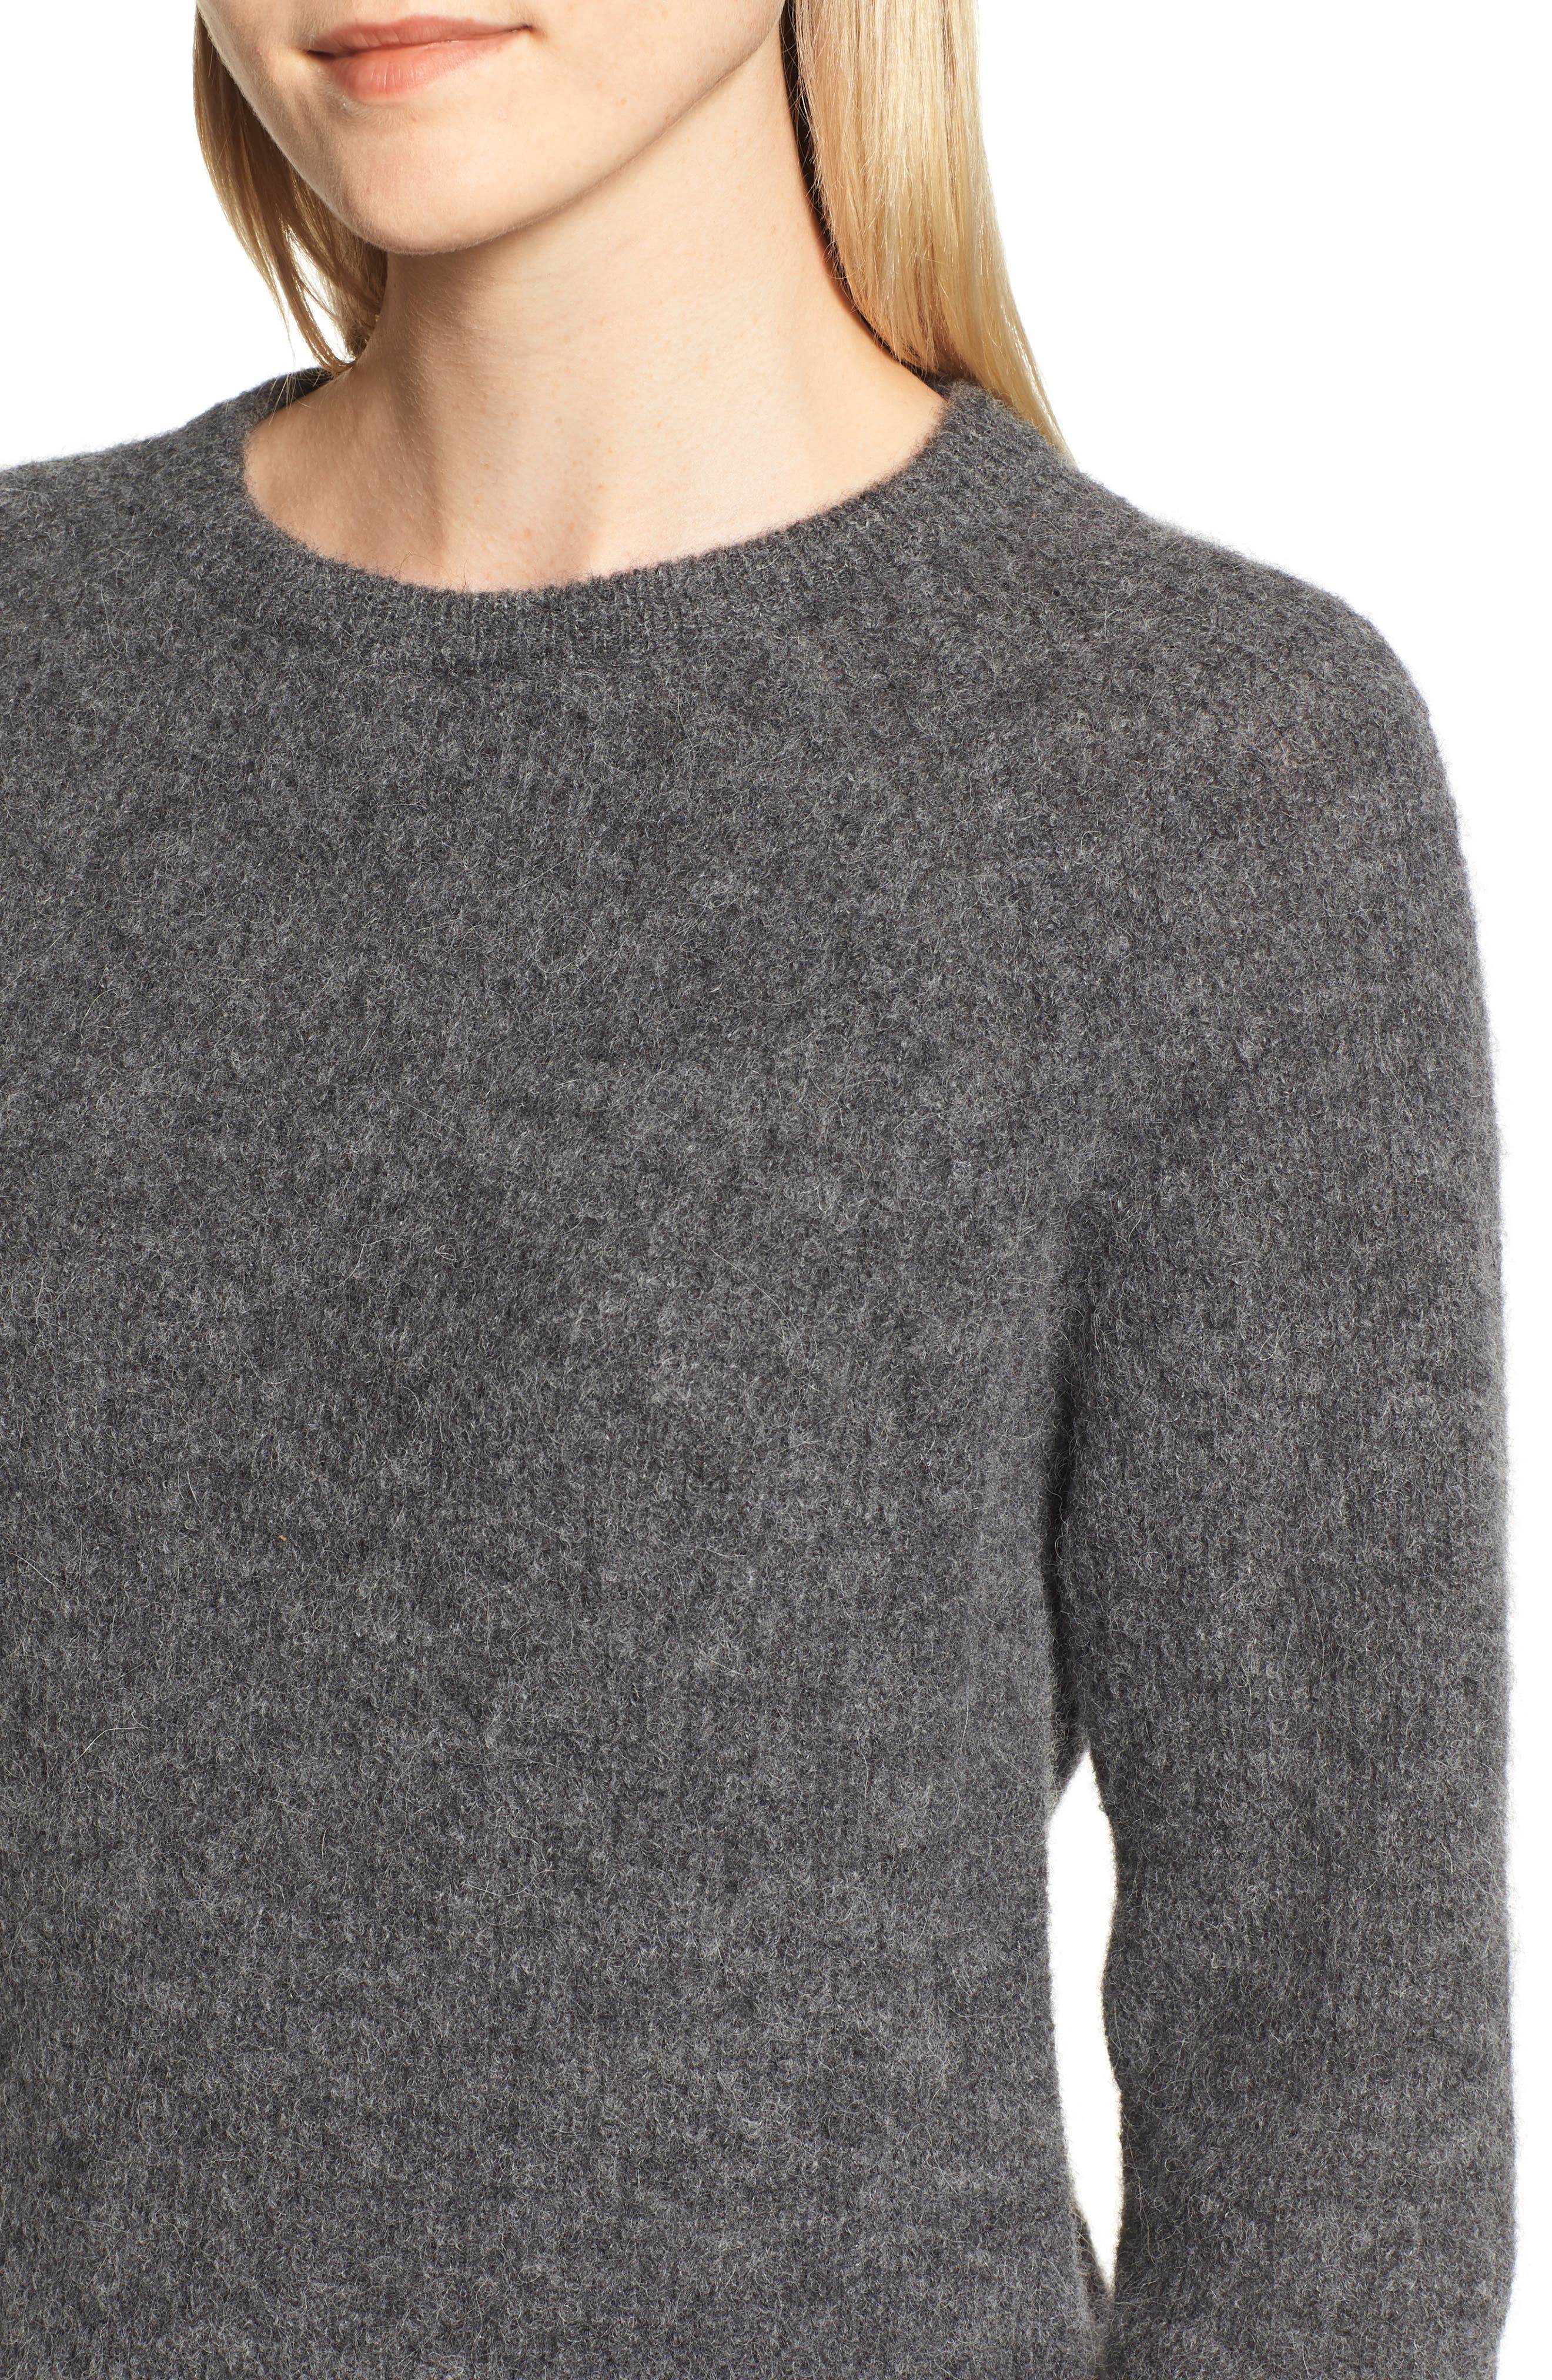 Olivia Crewneck Sweater,                             Alternate thumbnail 4, color,                             DARK GREY MARL